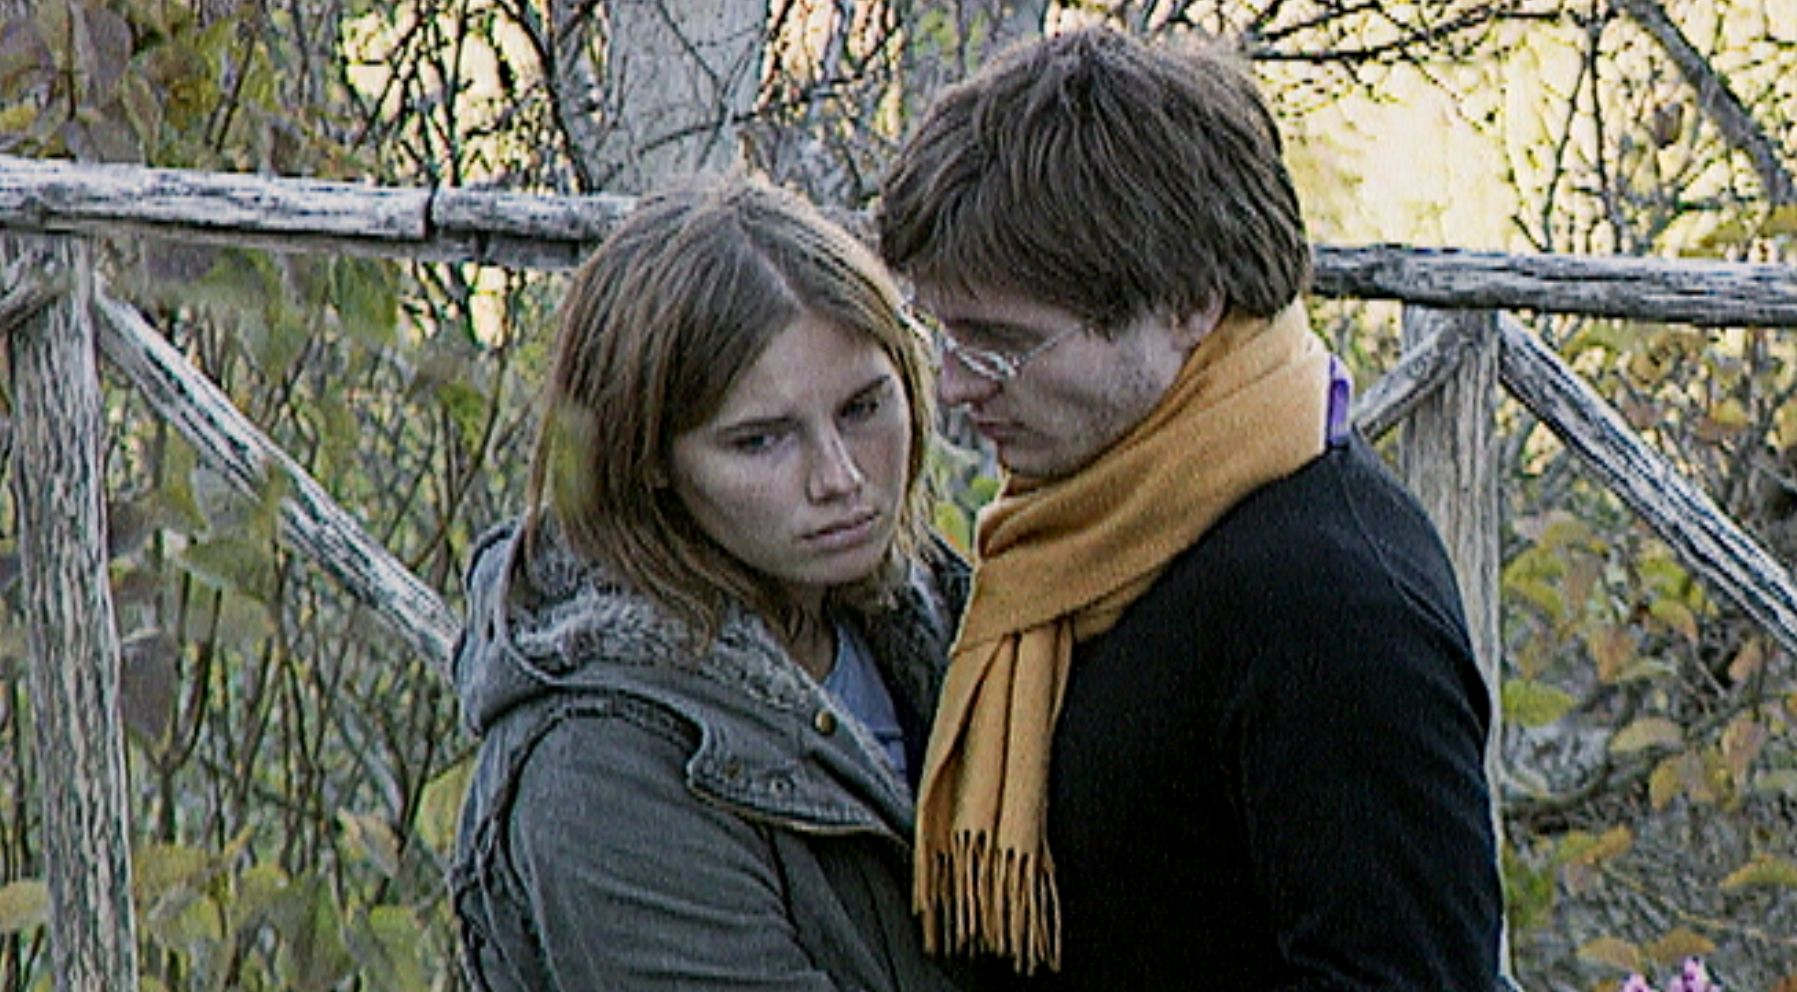 Amanda Knox with her lover after the murder